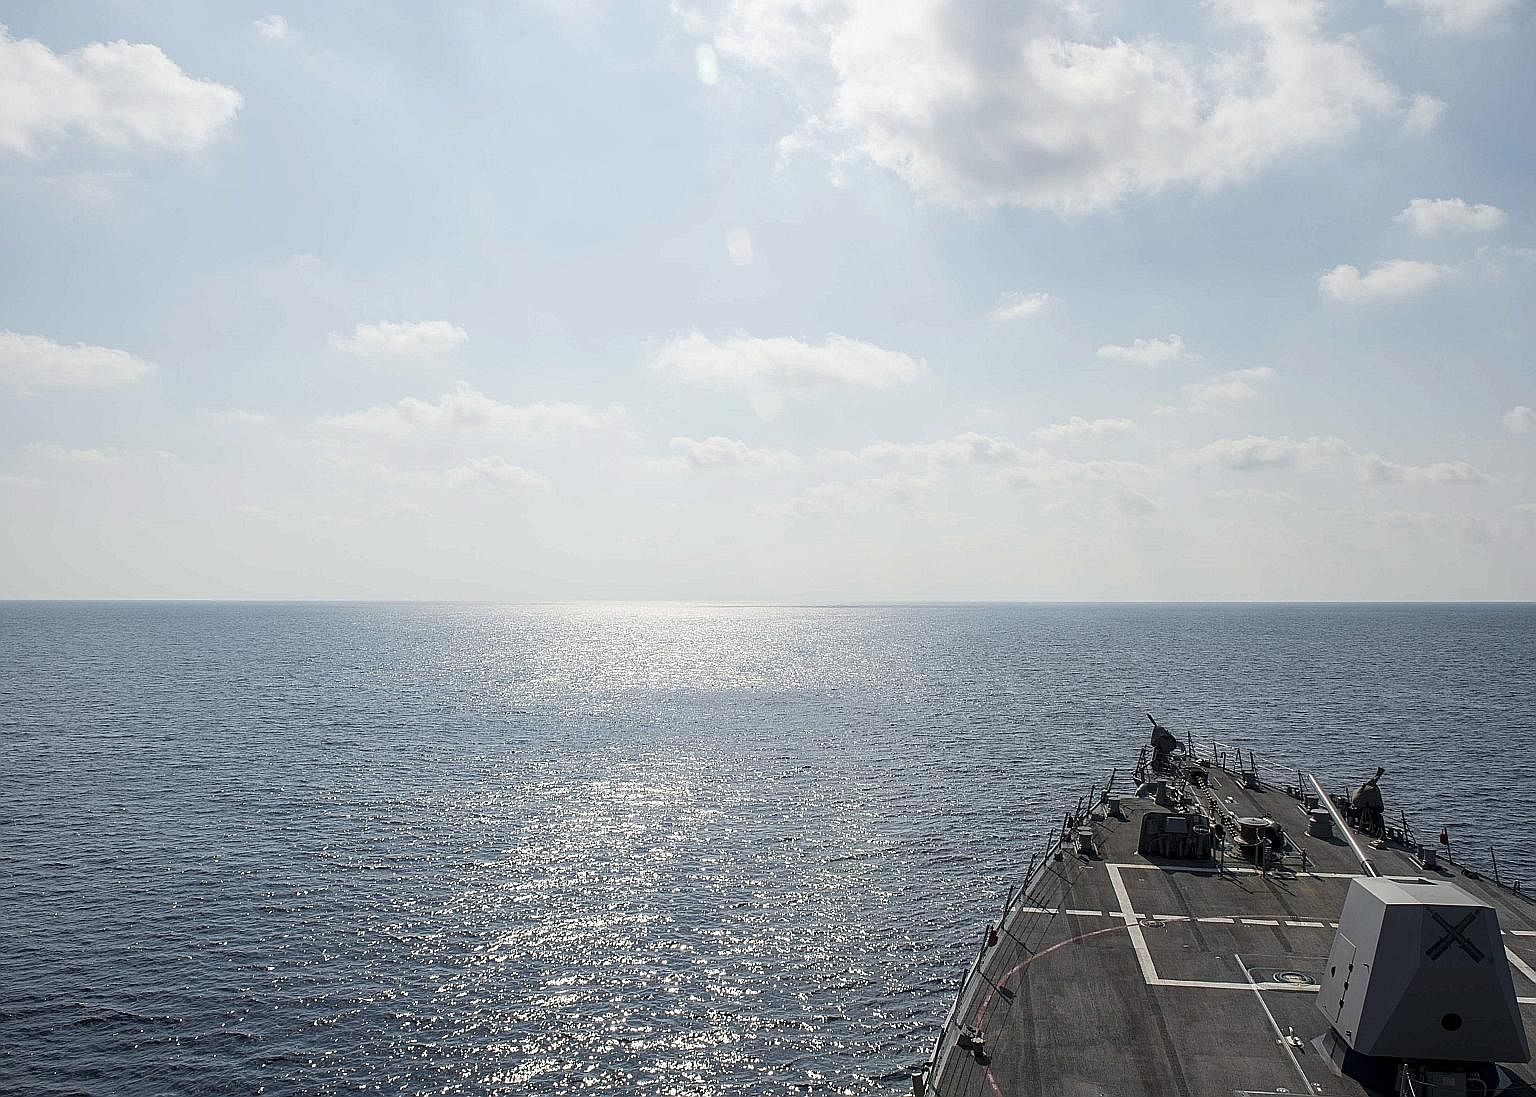 "The guided-missile destroyer USS William P. Lawrence conducting a routine patrol in international waters in the South China Sea on May 2. On May 10, the US vessel was reported to have conducted a ""routine freedom of navigation operation"" sailing near"